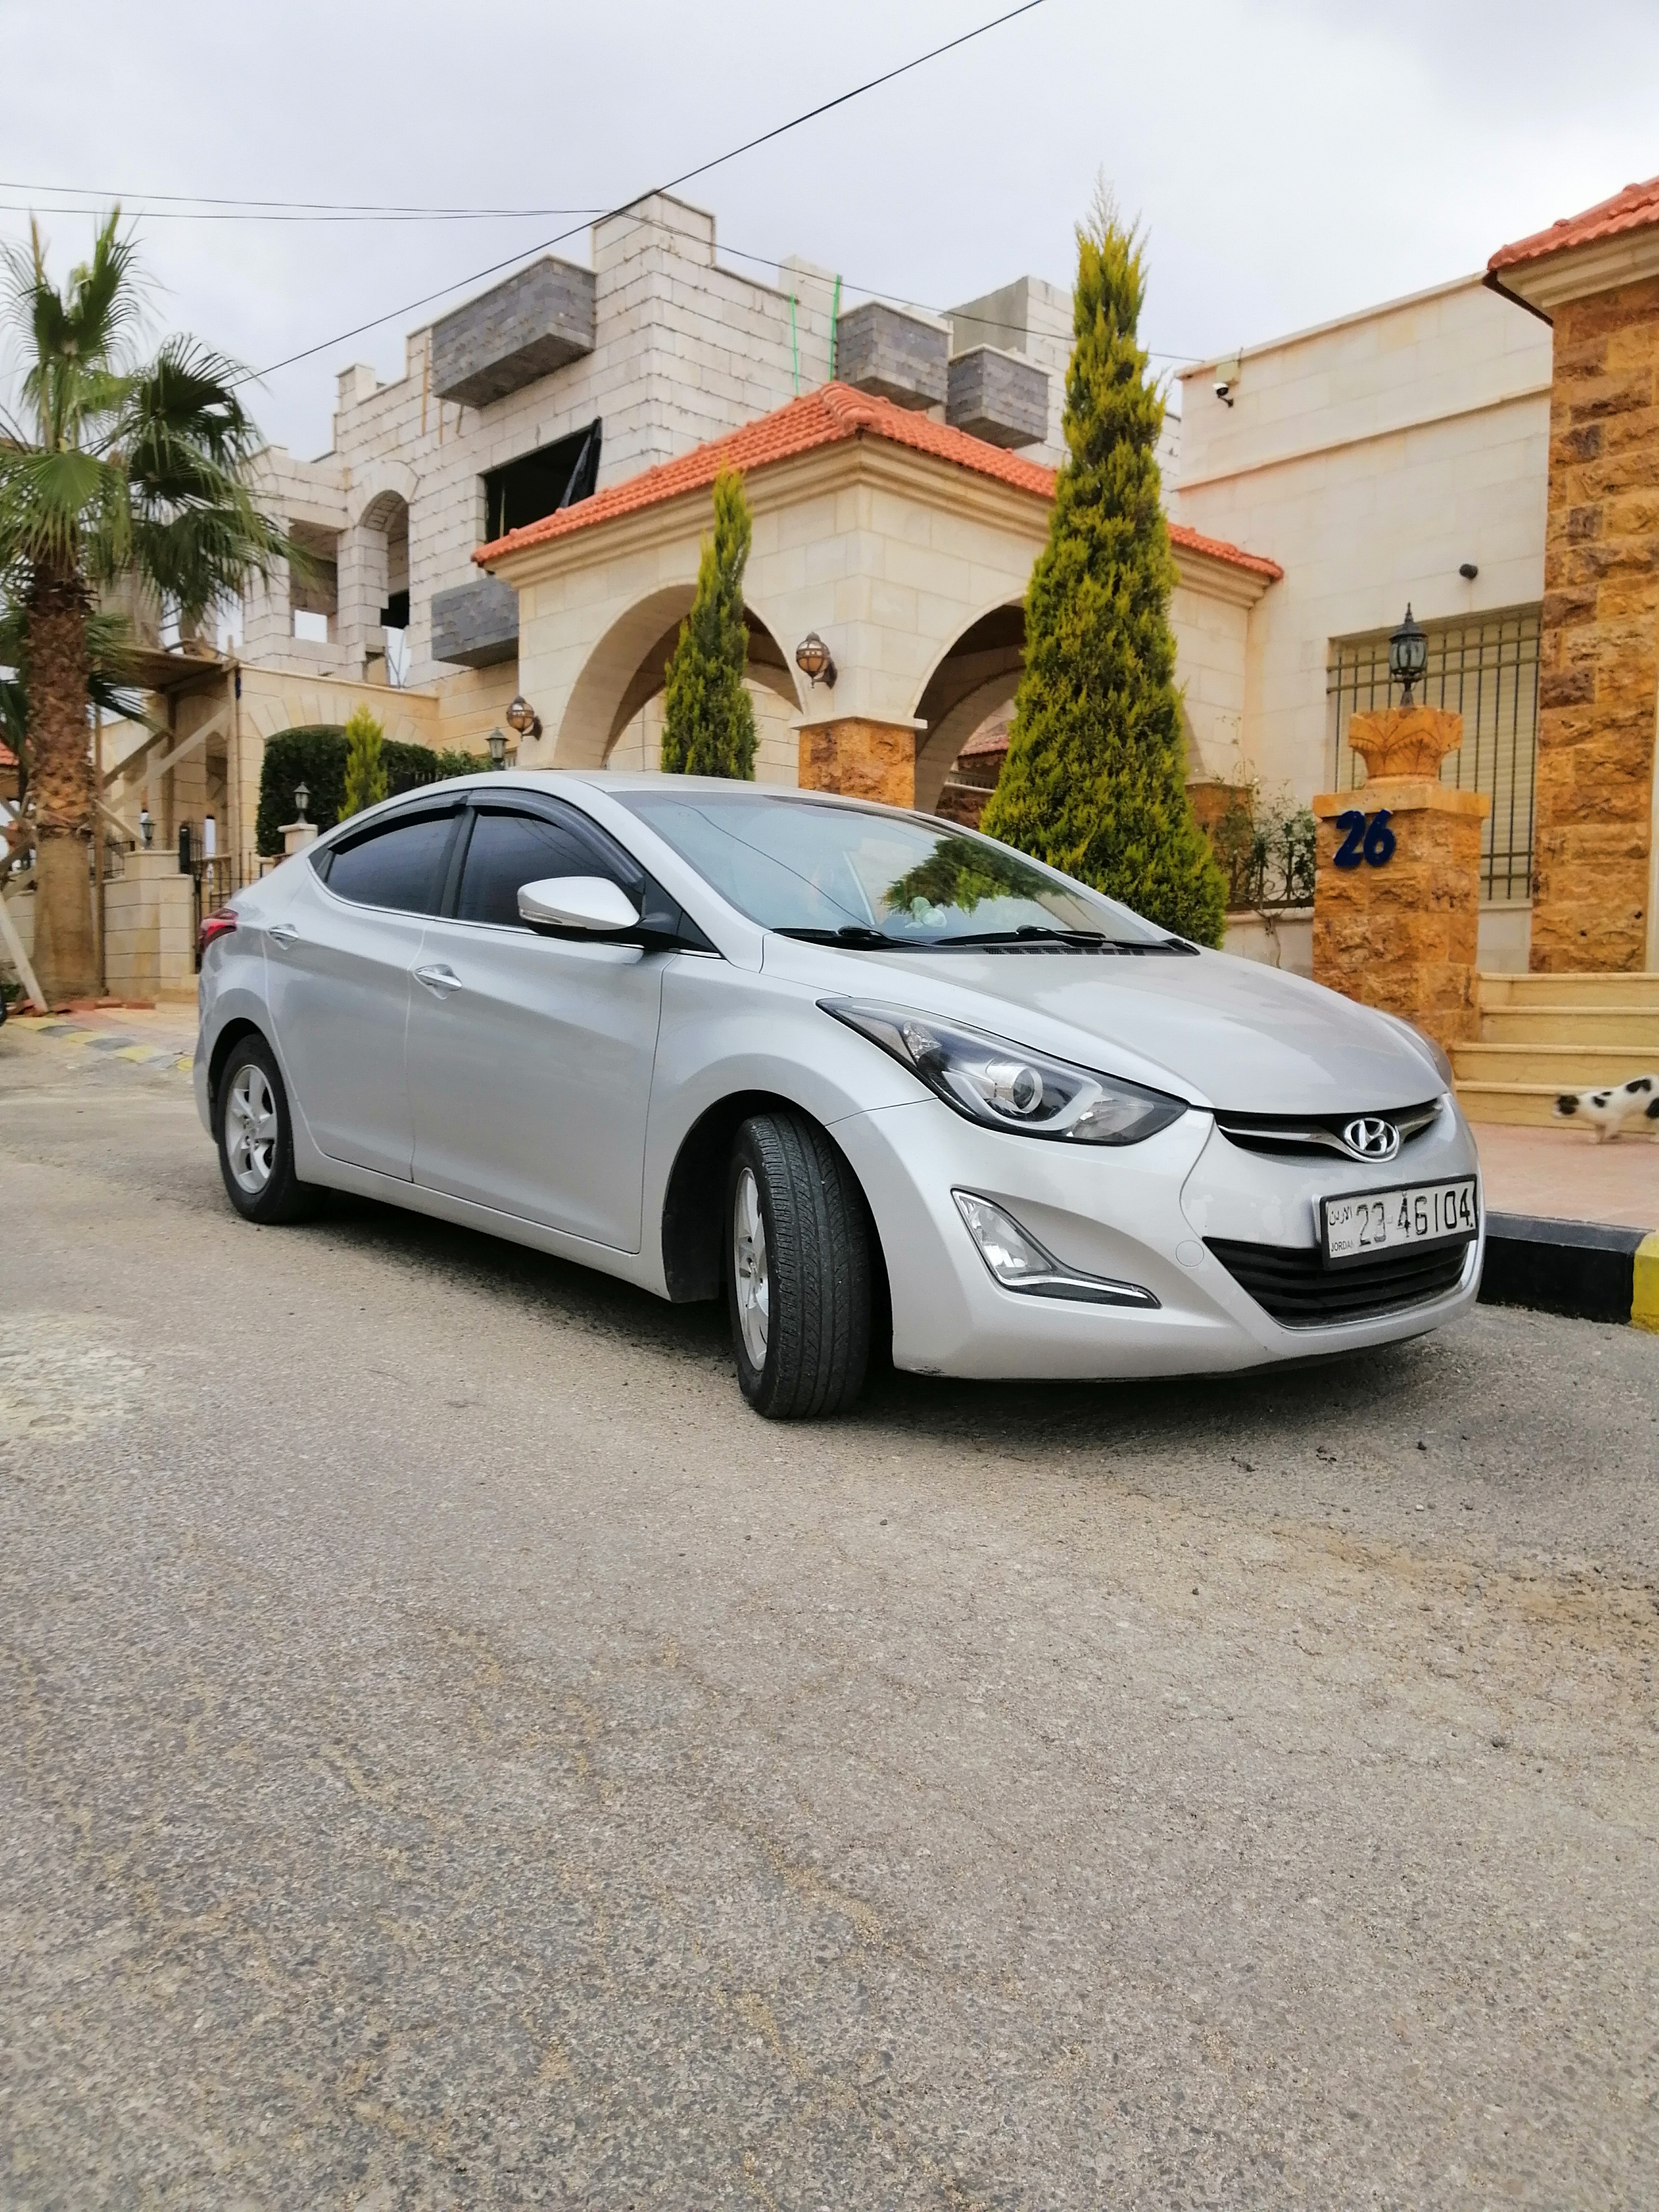 If you are looking for a monthly hire solution, we here at Al Emad can provide you with high-quality vehicles at the cheapest prices for your travels within the-  للإيجار هونداي افانتي...